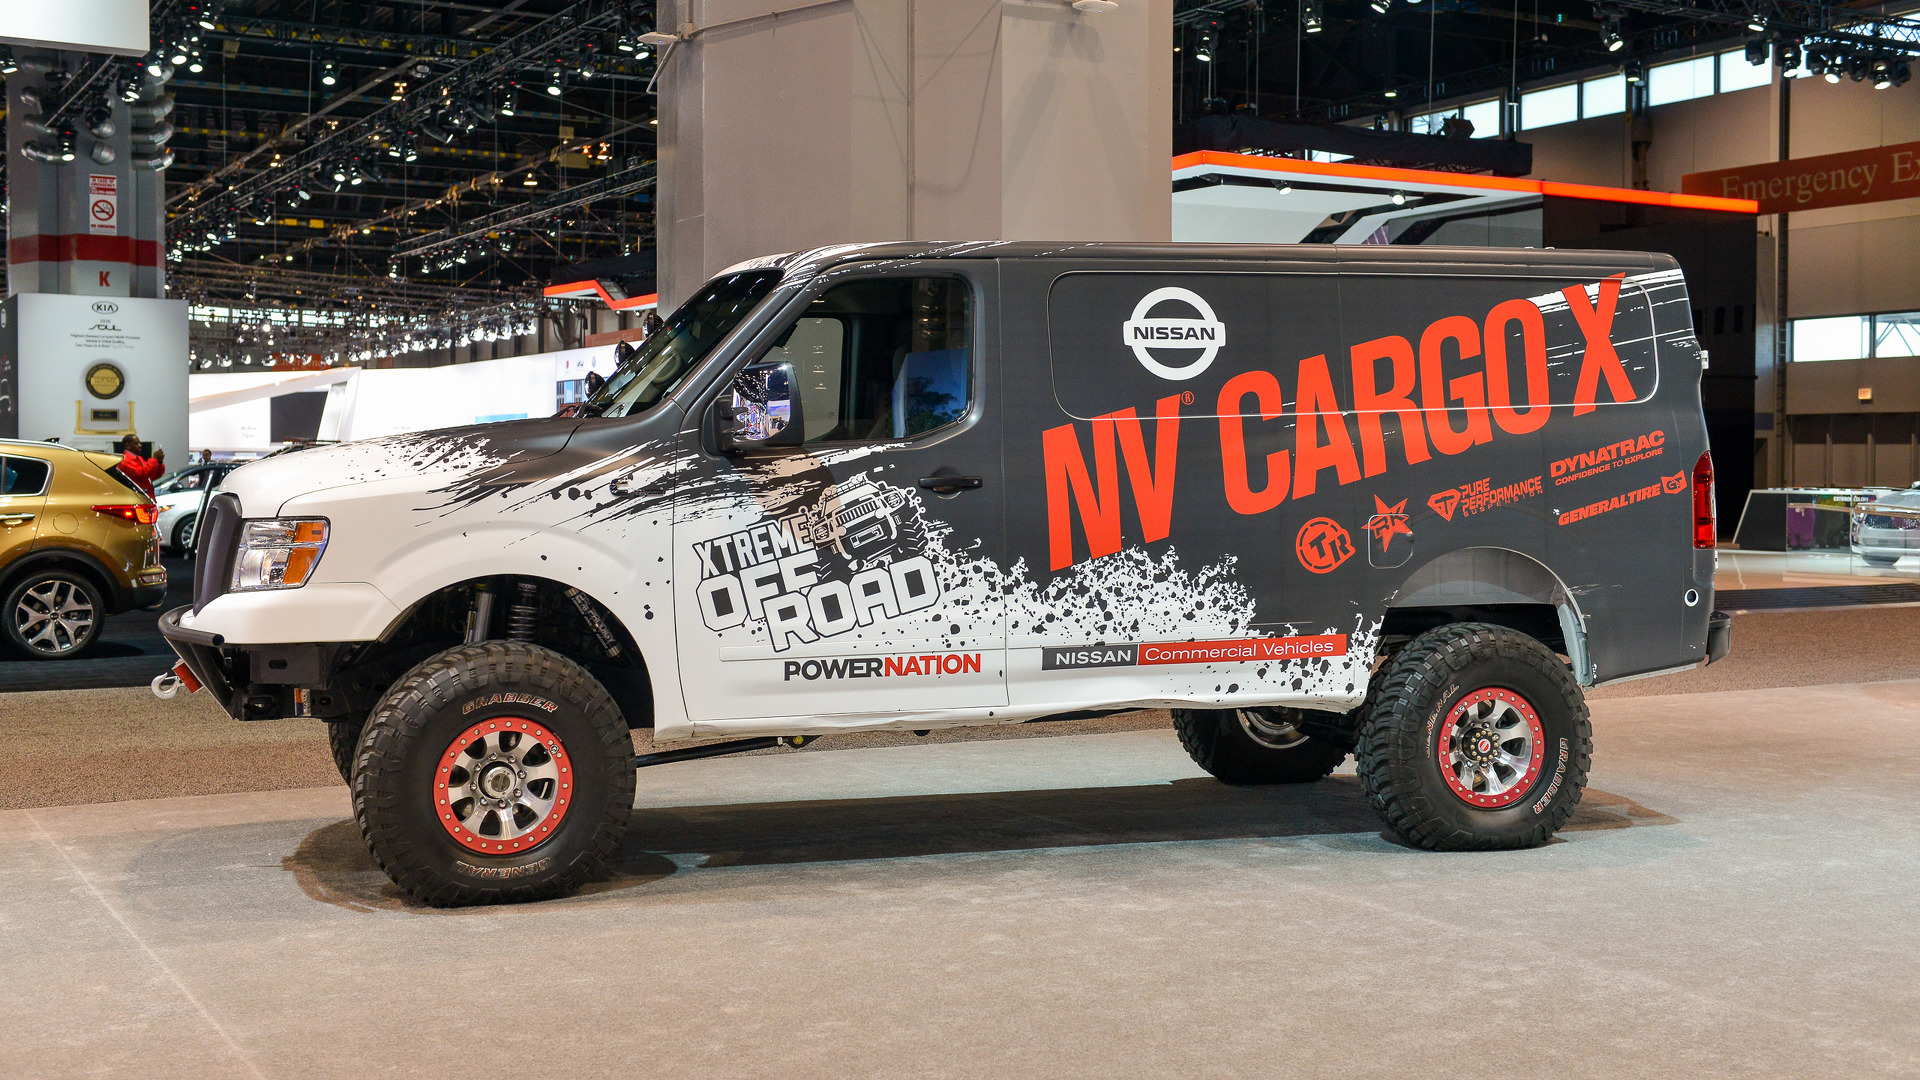 Off Road Van For Sale >> Nissan NV Cargo X is off-roader and support vehicle all in one